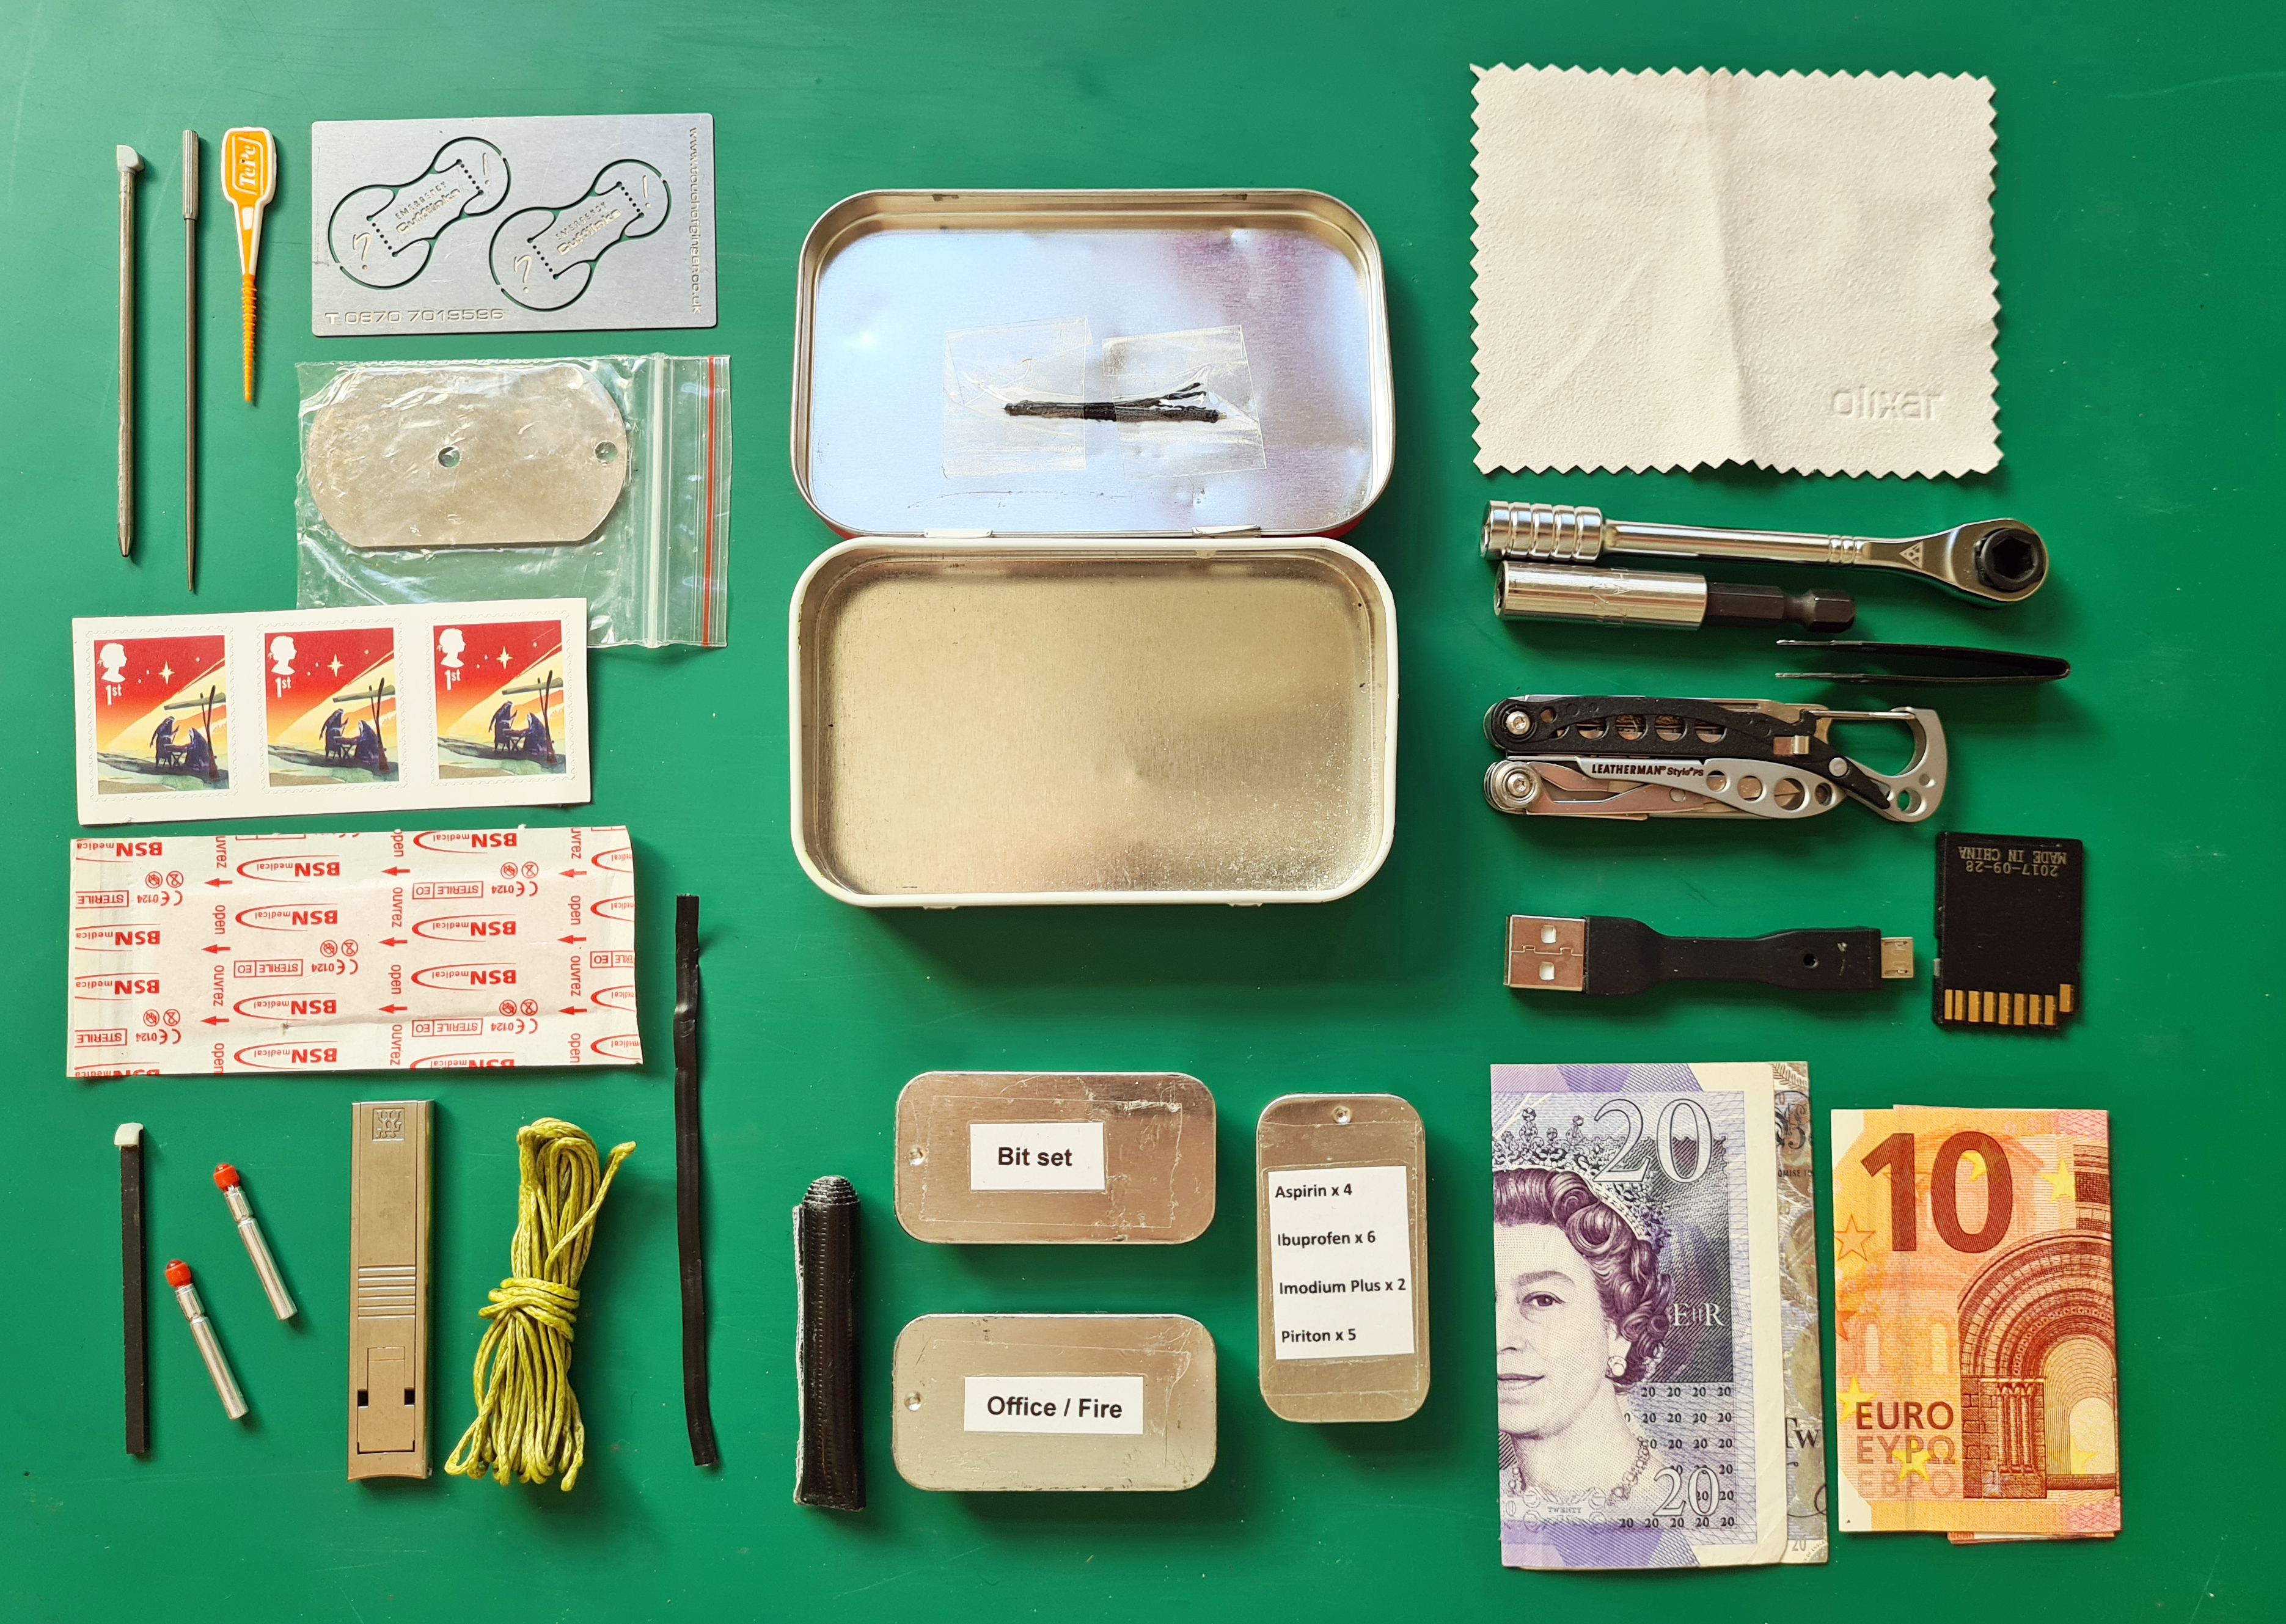 All layers removed from Urban Altoids kit